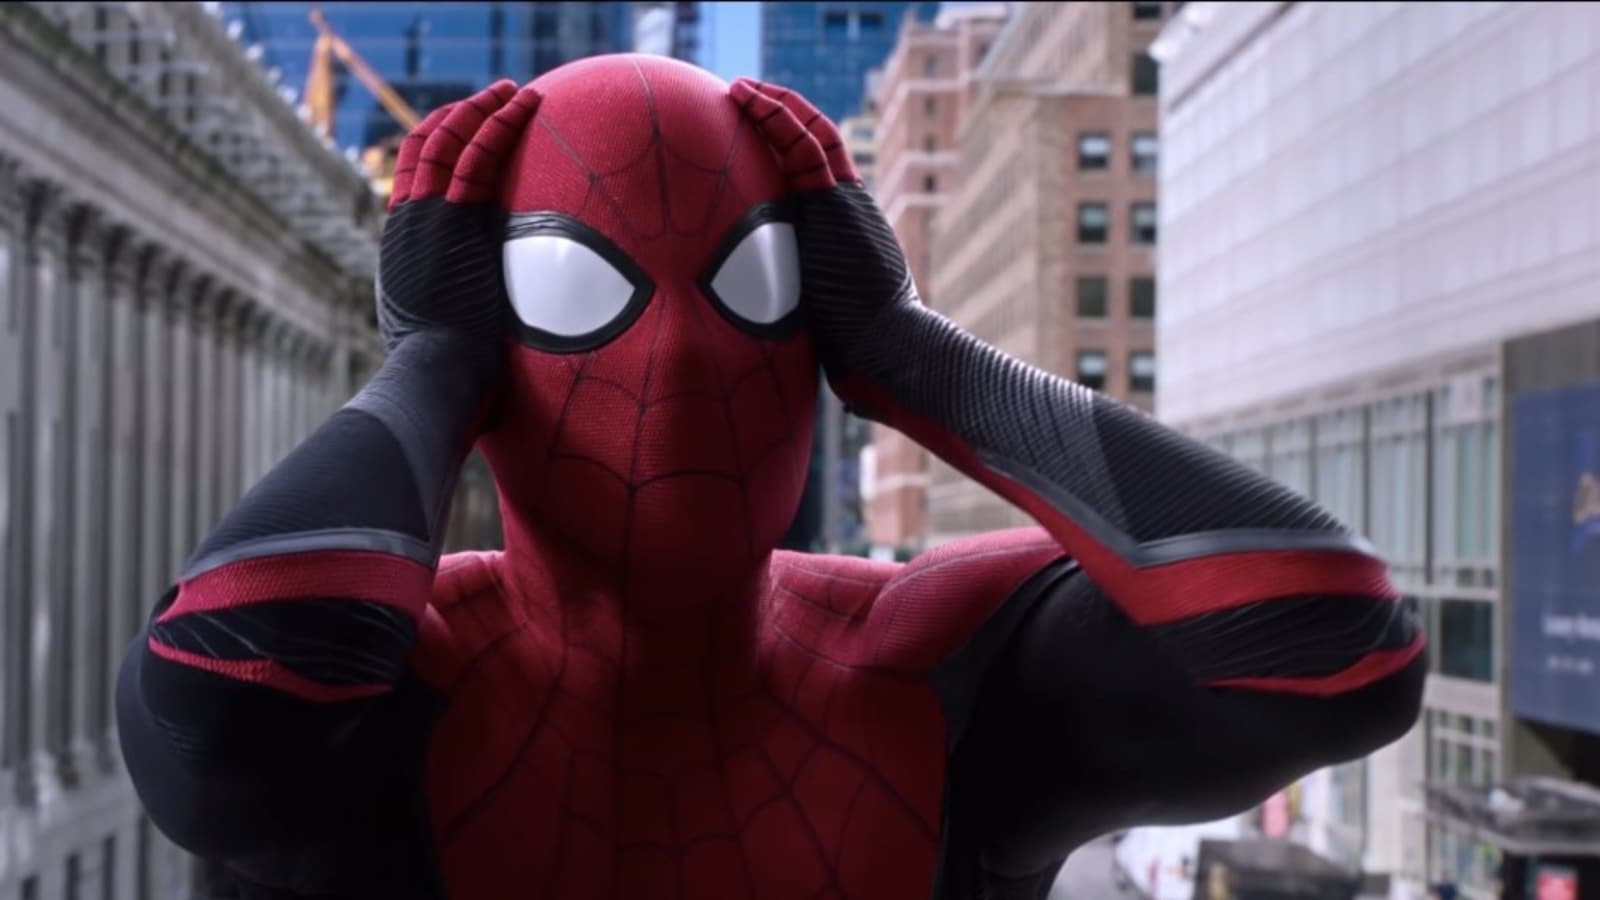 Spider-Man: No Way Home trailer leaked, fans willing to defend culprit in courts